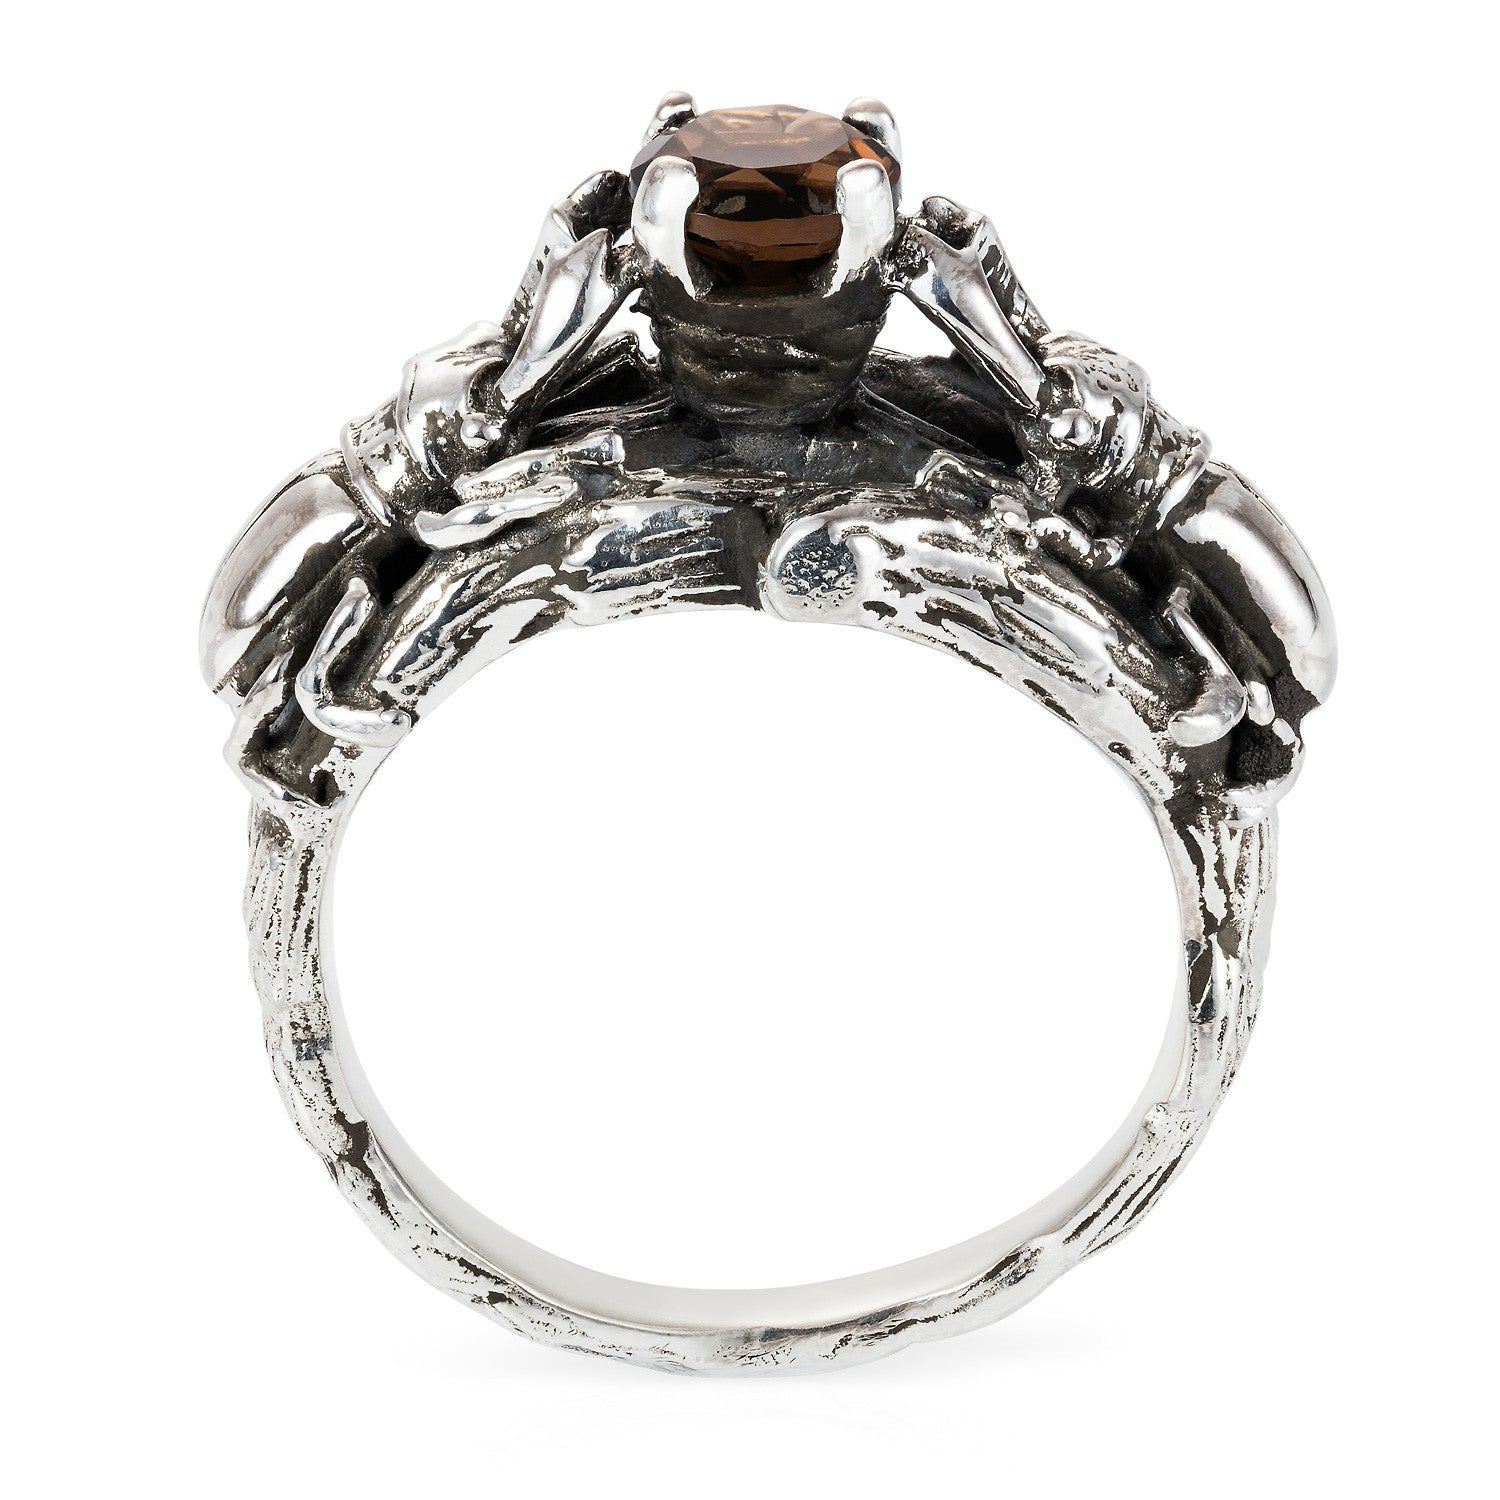 Little Stag Beetle Cocktail Ring with smokey quartz